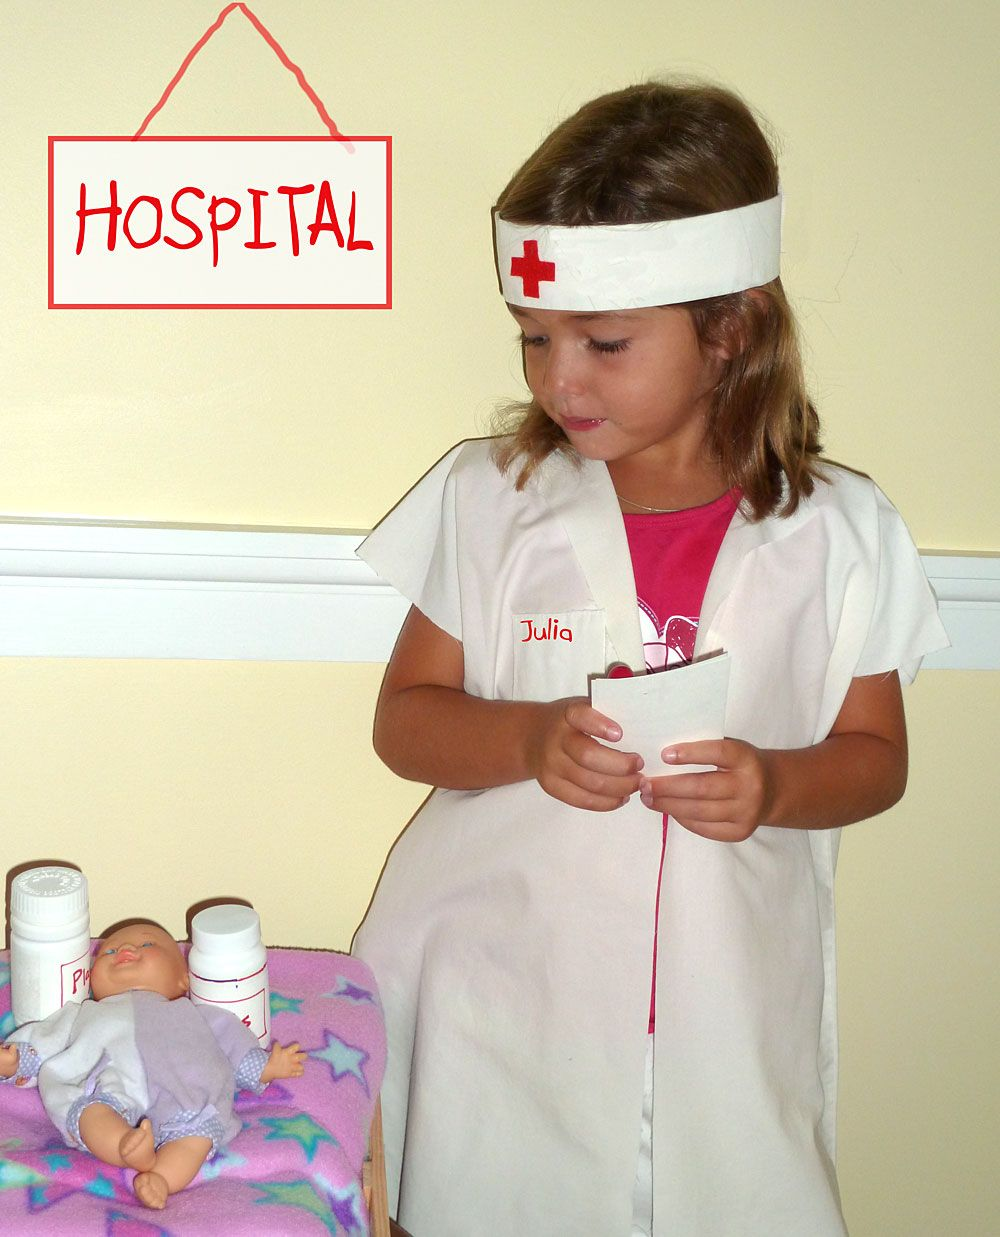 d31a5c1d706d9 DIY Nurse Costume We love making kids dressup costumes for play or for  Halloween. This adorable Nurse Costume or Doctor Costumeis a No-sew costume  with ...